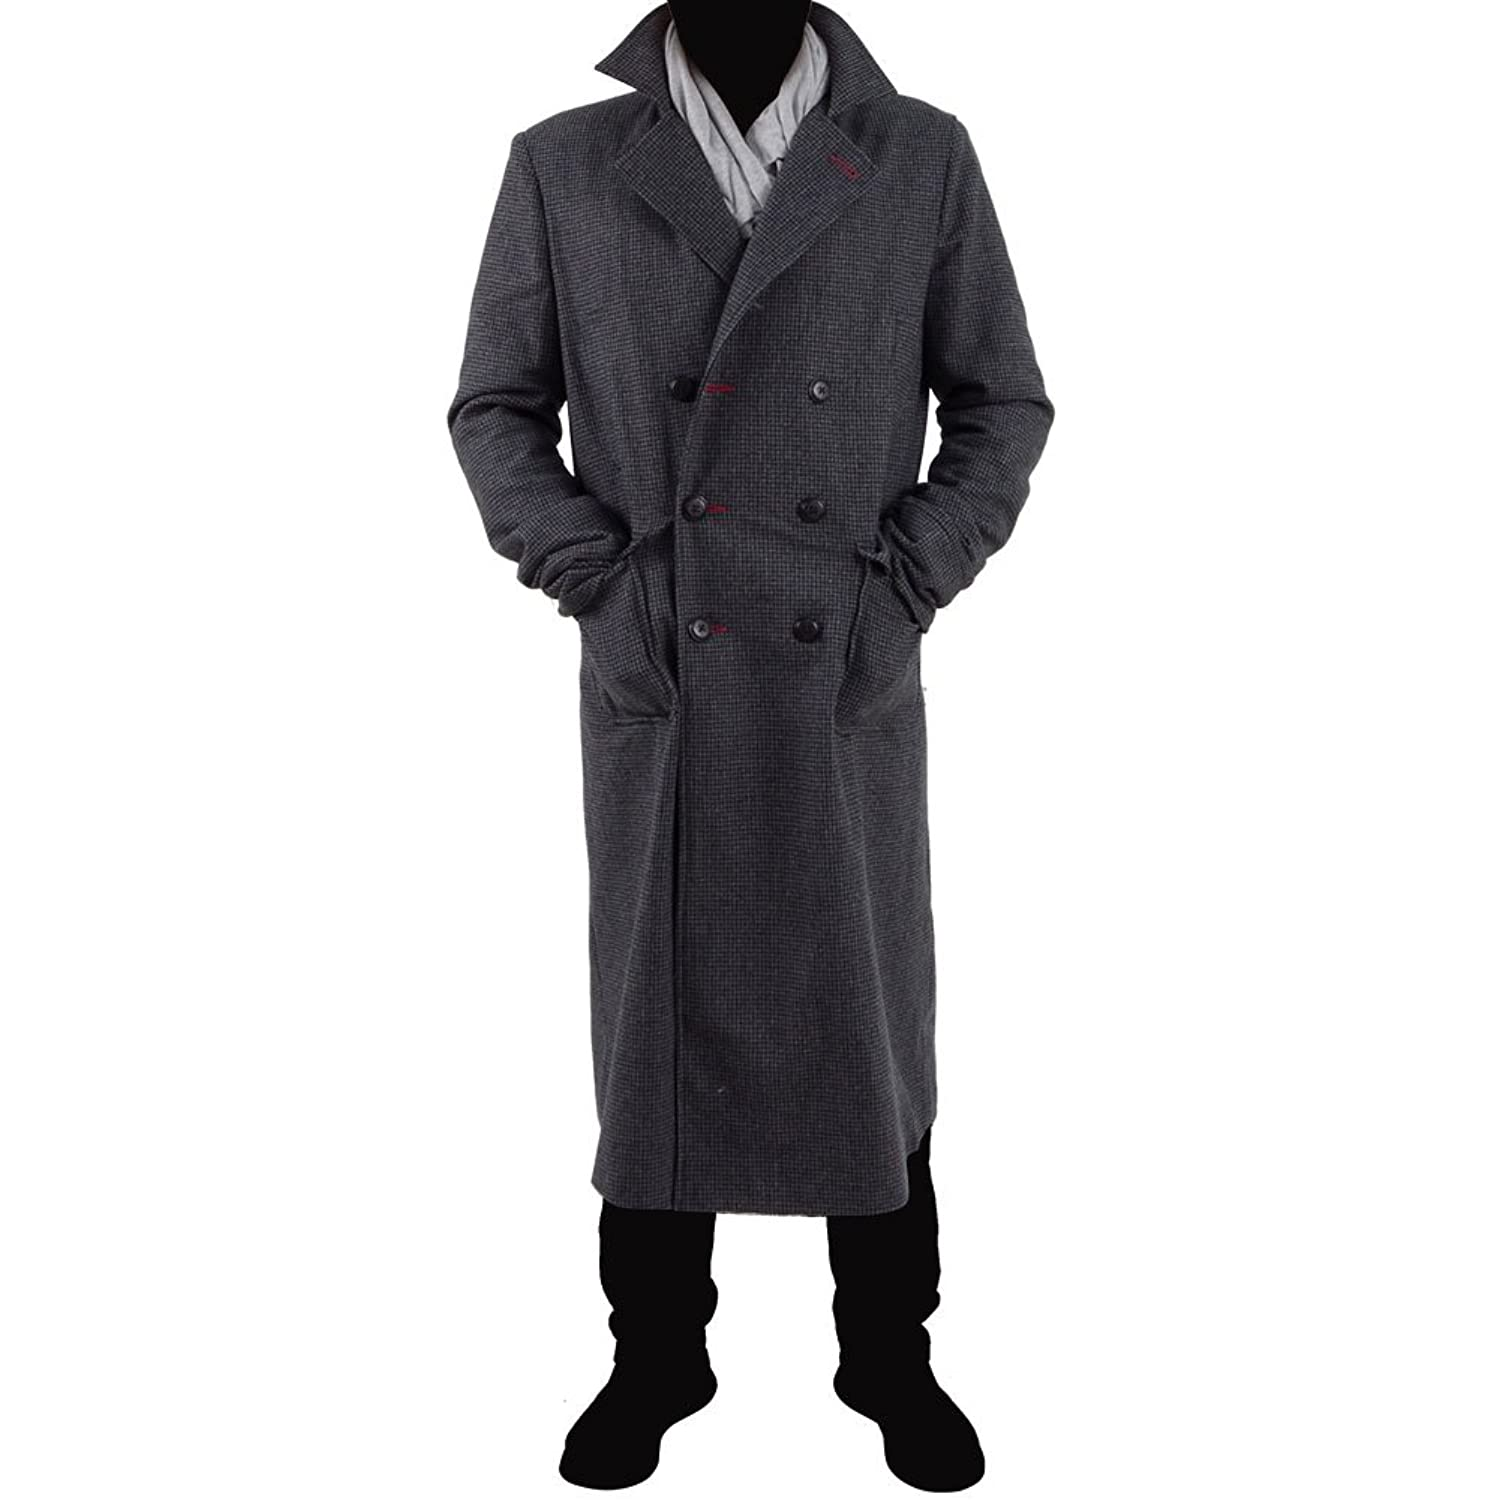 1920s Fashion for Men Mens Plaids And Tweeds Long Trench Coat Halloween Cosplay Costume Overcoat $100.00 AT vintagedancer.com